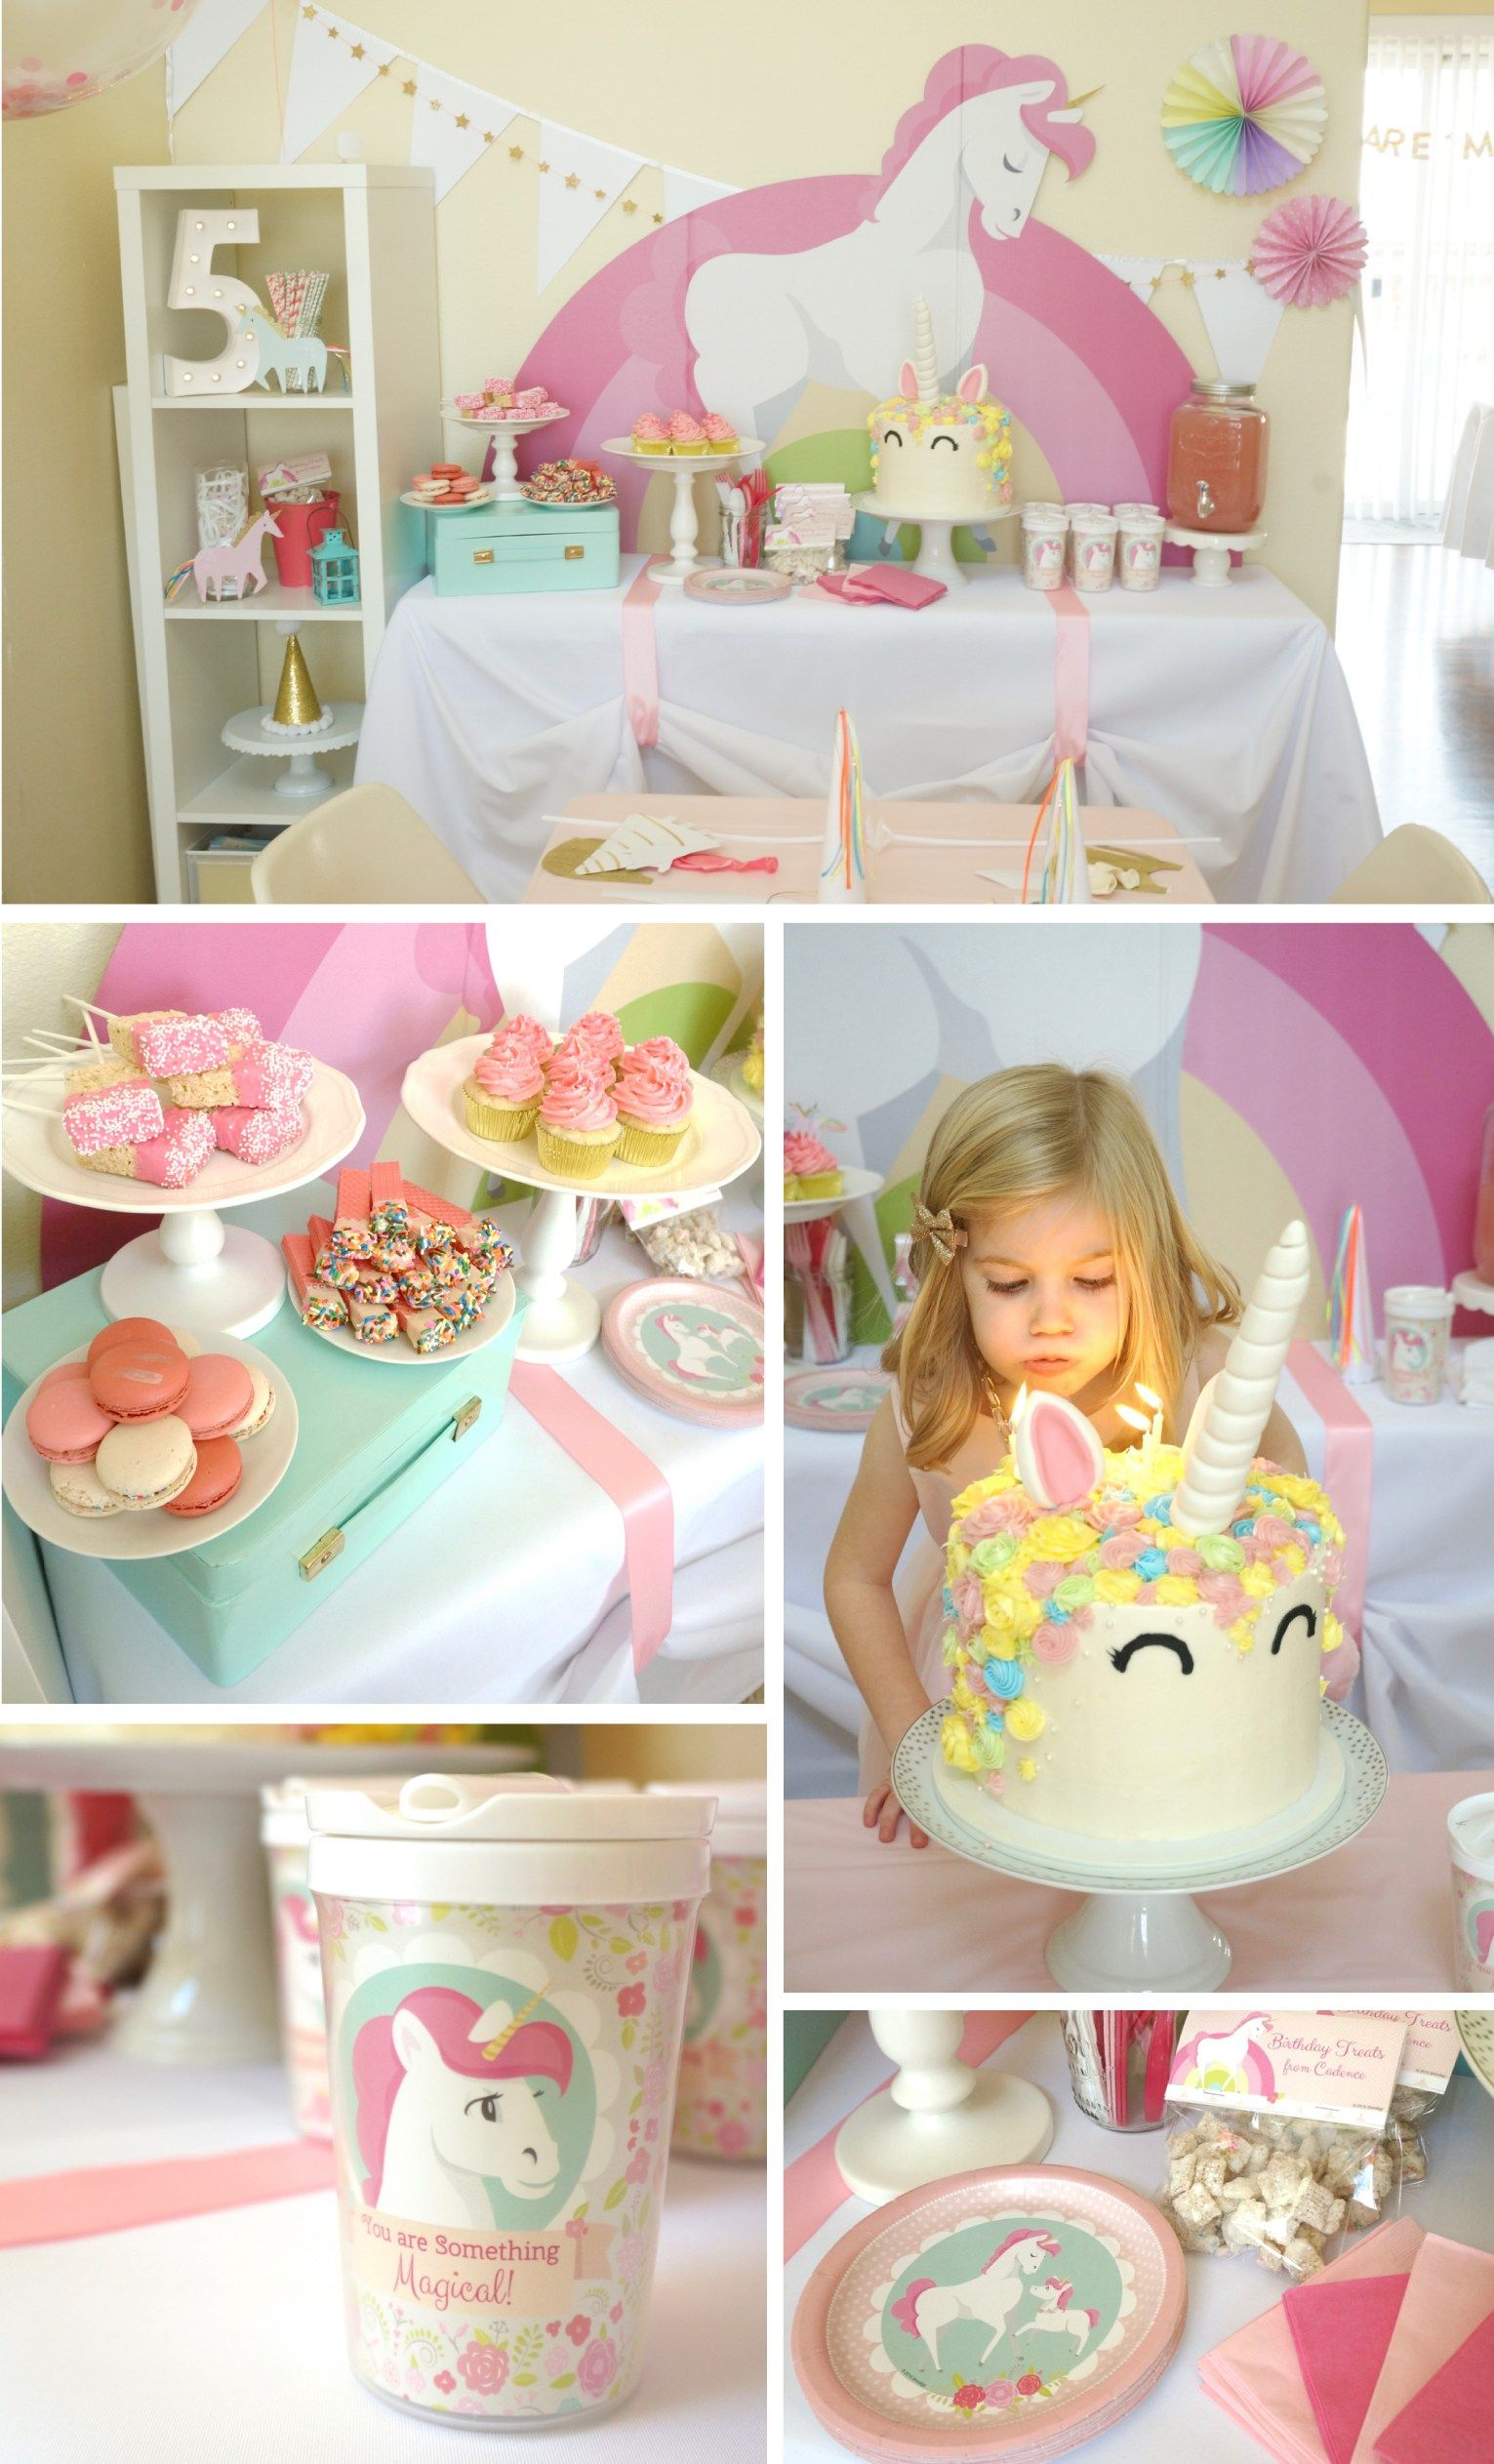 Magical unicorn party the caterpillar years first birthday parties year old also for  five best kids ever so rh ar pinterest